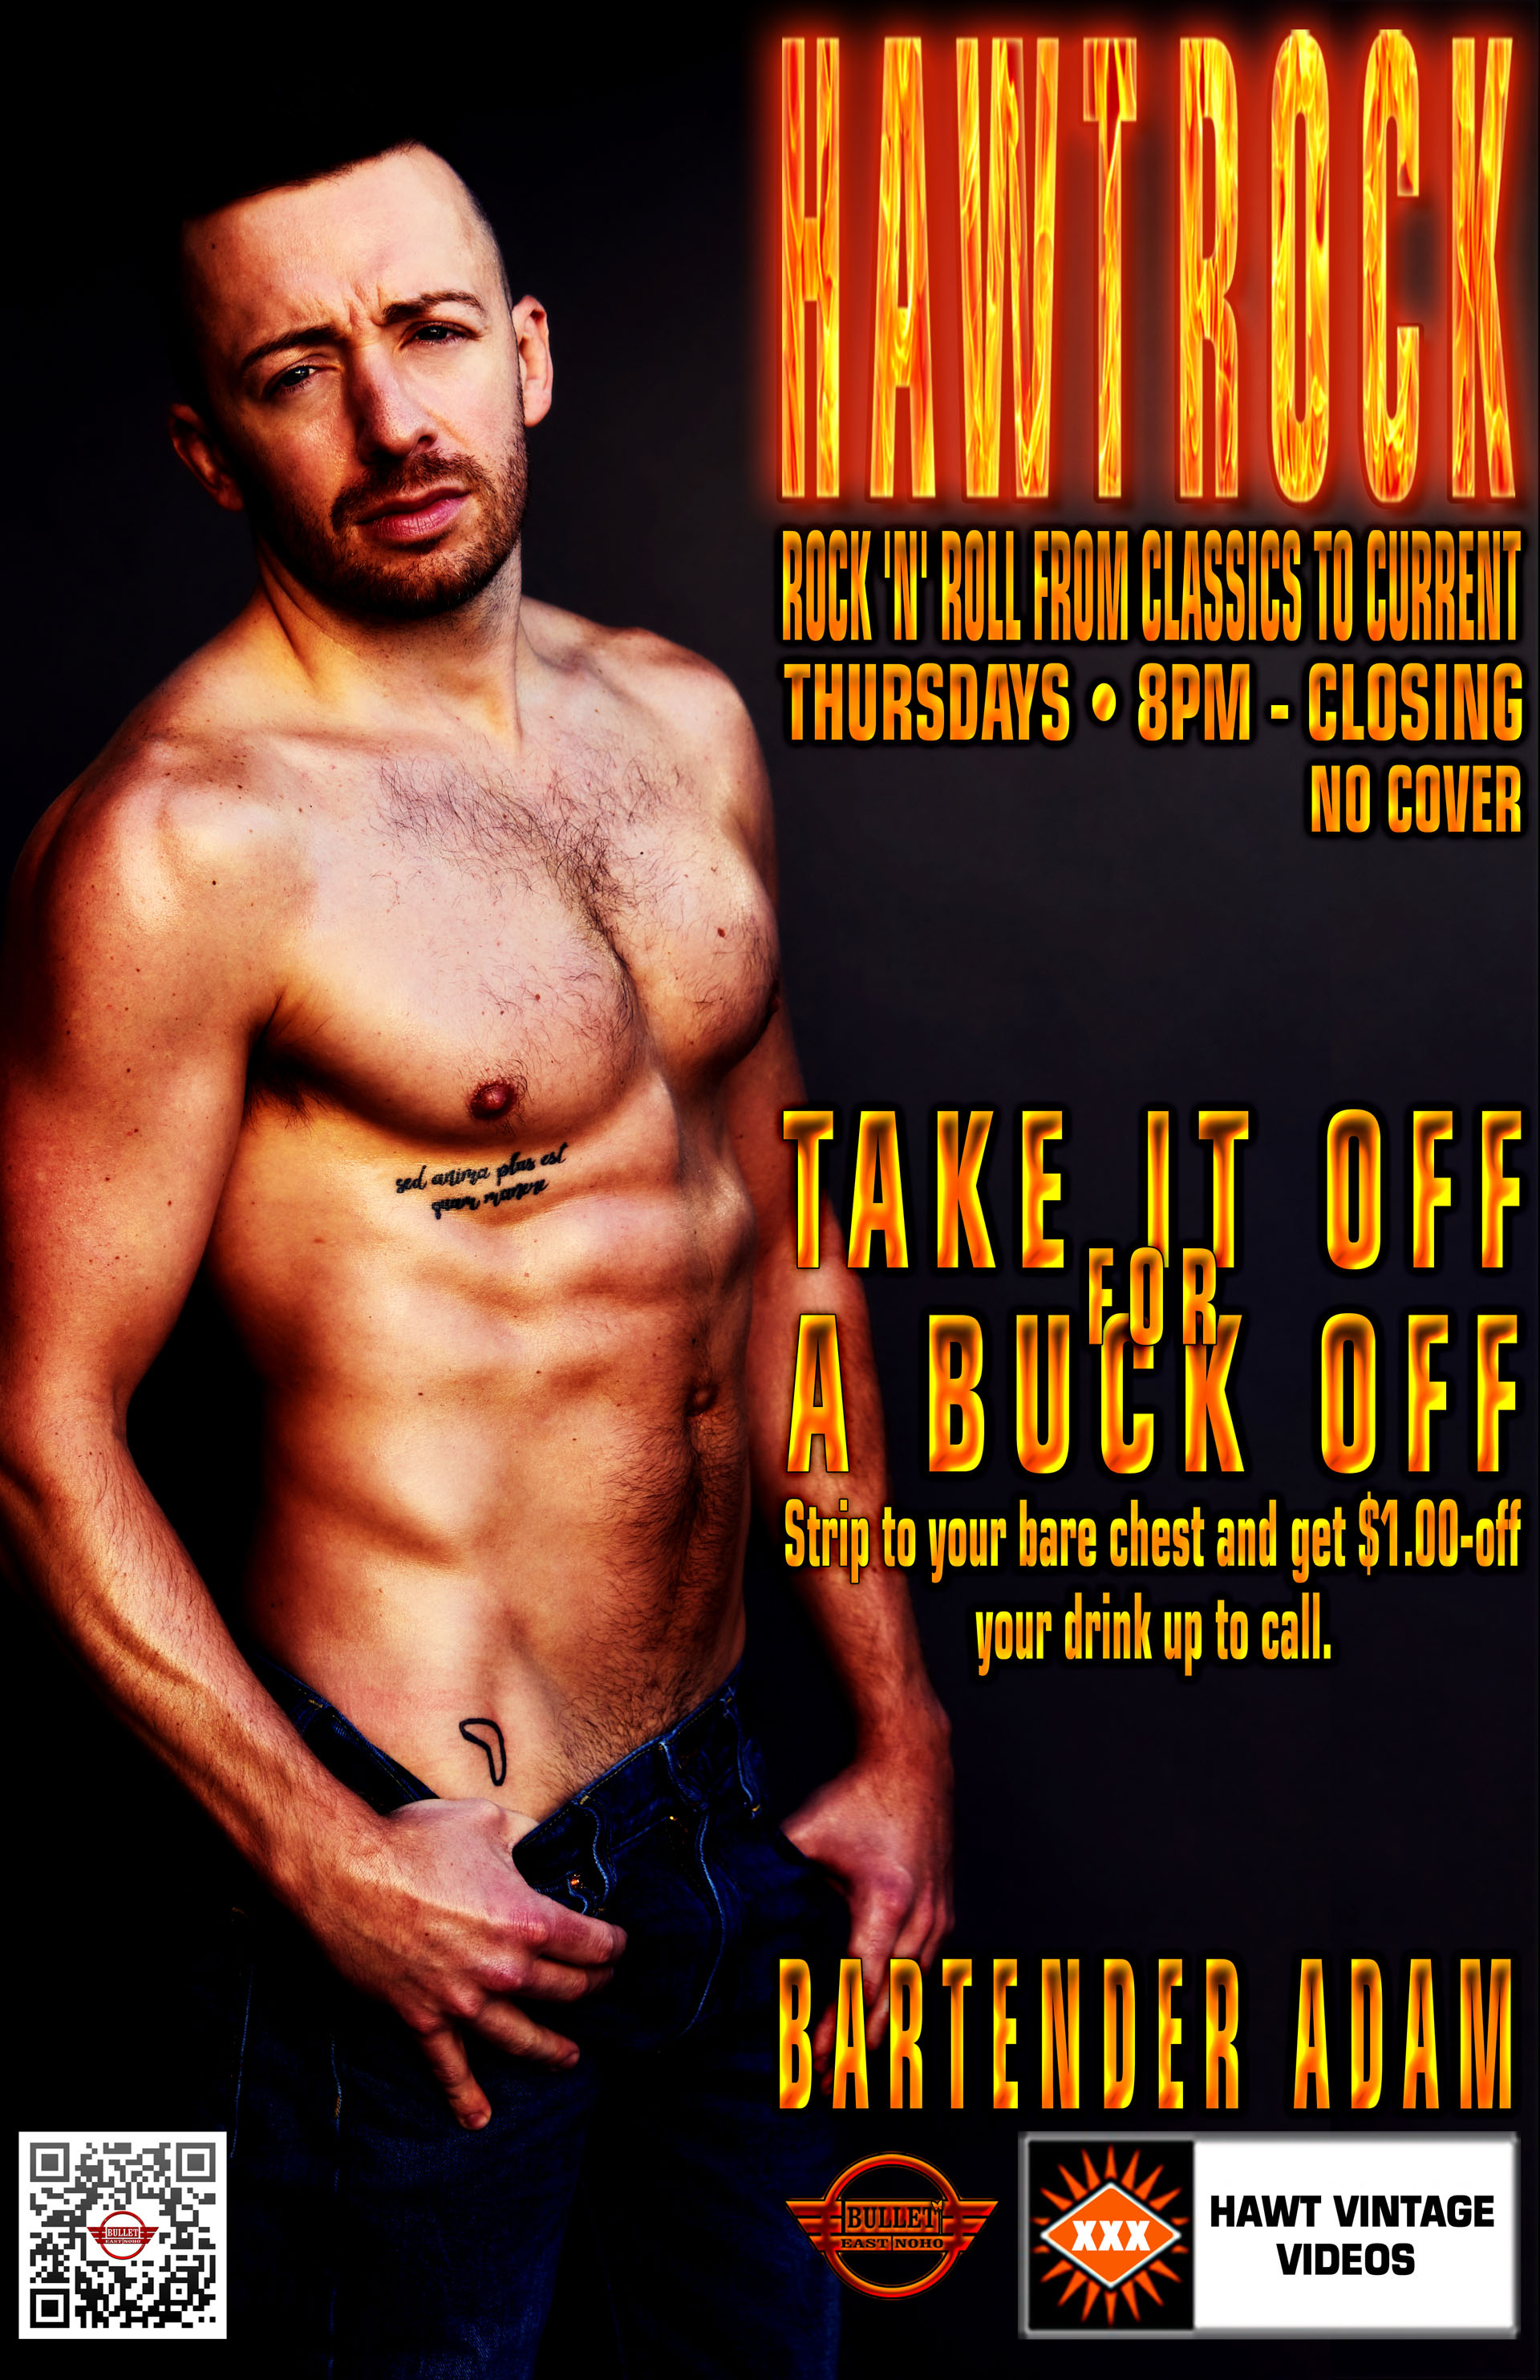 The Bullet Bar Presents HAWT ROCK: Thursday Nights from 8:00 PM to Closing with Bartender Adam! Take your shirt off and get a $ off up to call! No cover.